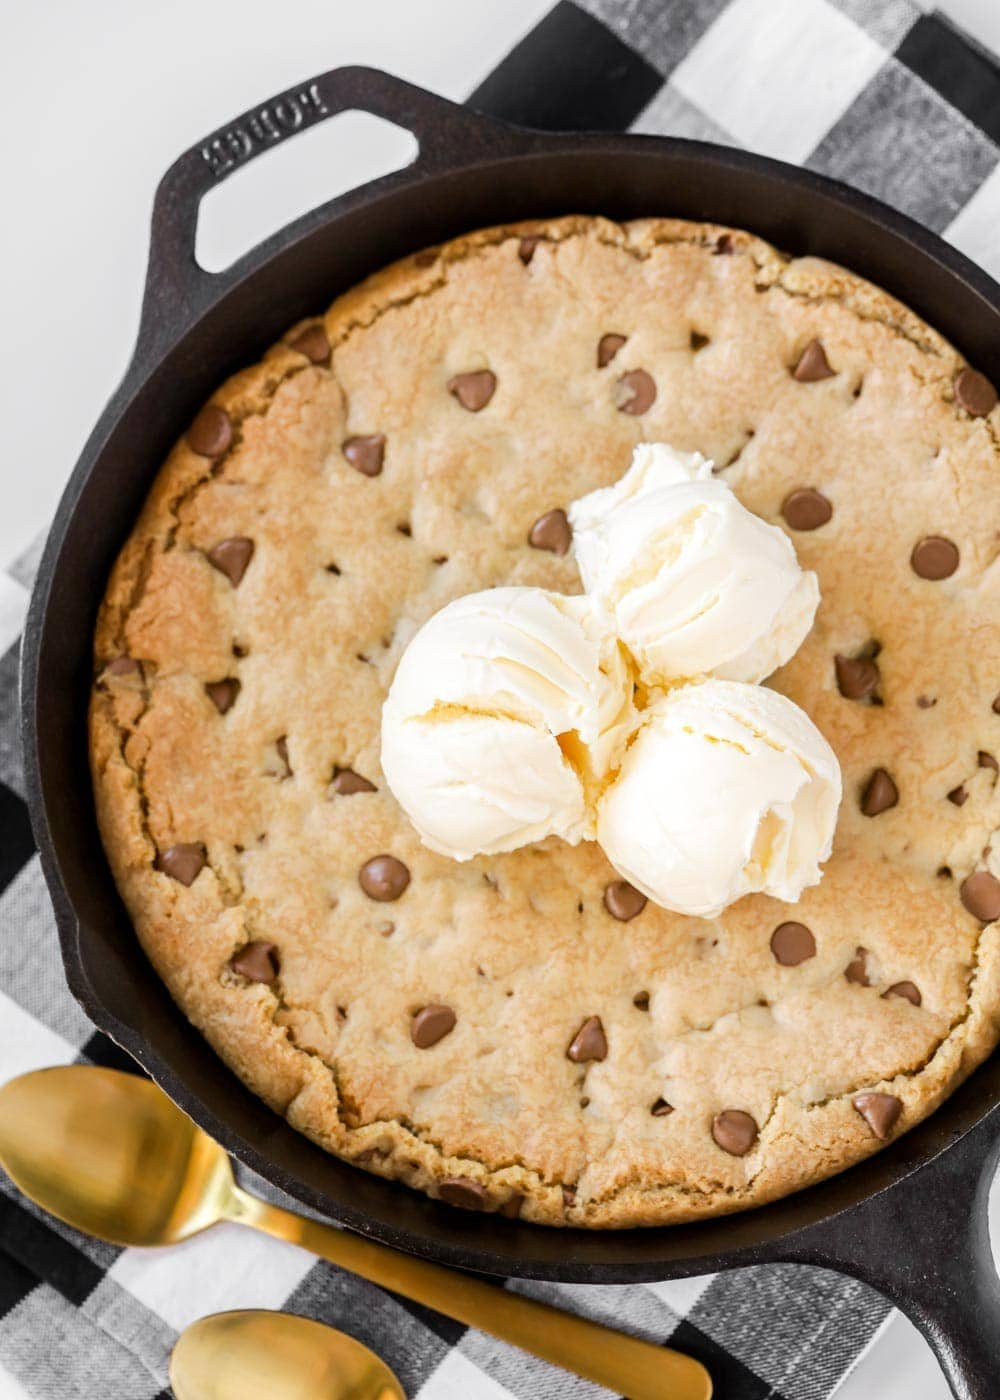 Pizookie recipe with ice cream on top